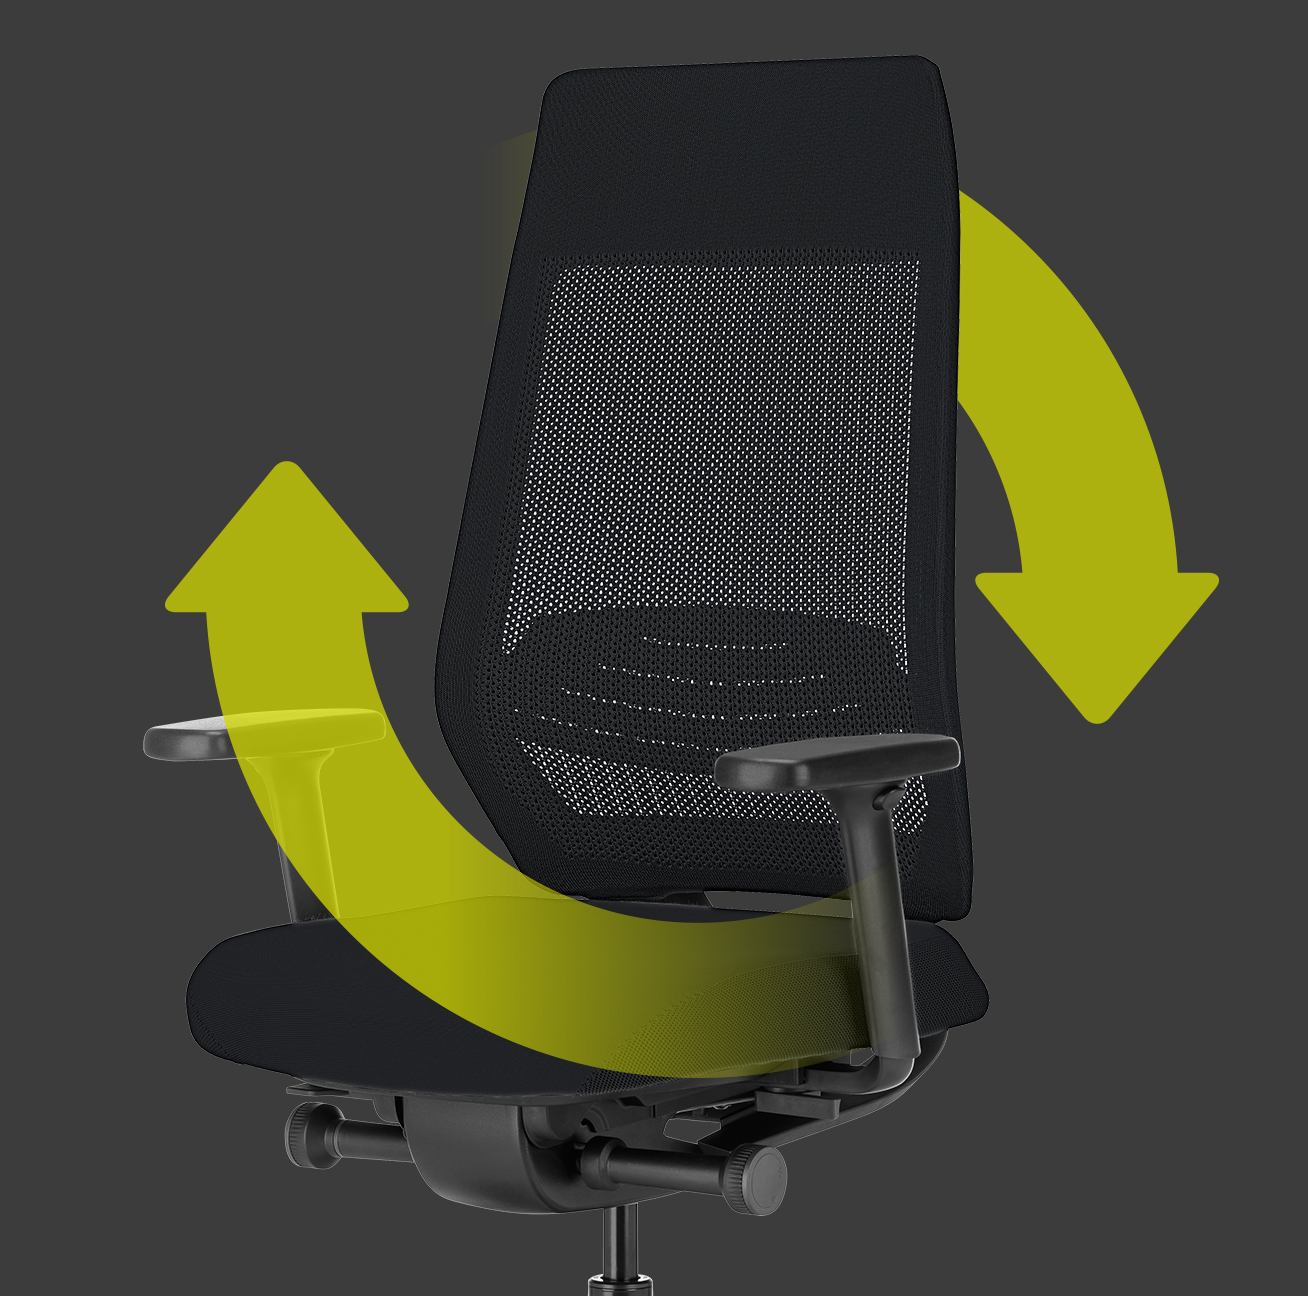 Side view of the ergonomic JOYCE swivel chair with black mesh backrest, black seat cover, black T-armrests and plastic parts in black (including base, column) with two green arrows forming a circle around the chair. This indicates the sustainability and reusability of the chair | by Daniel Figueroa